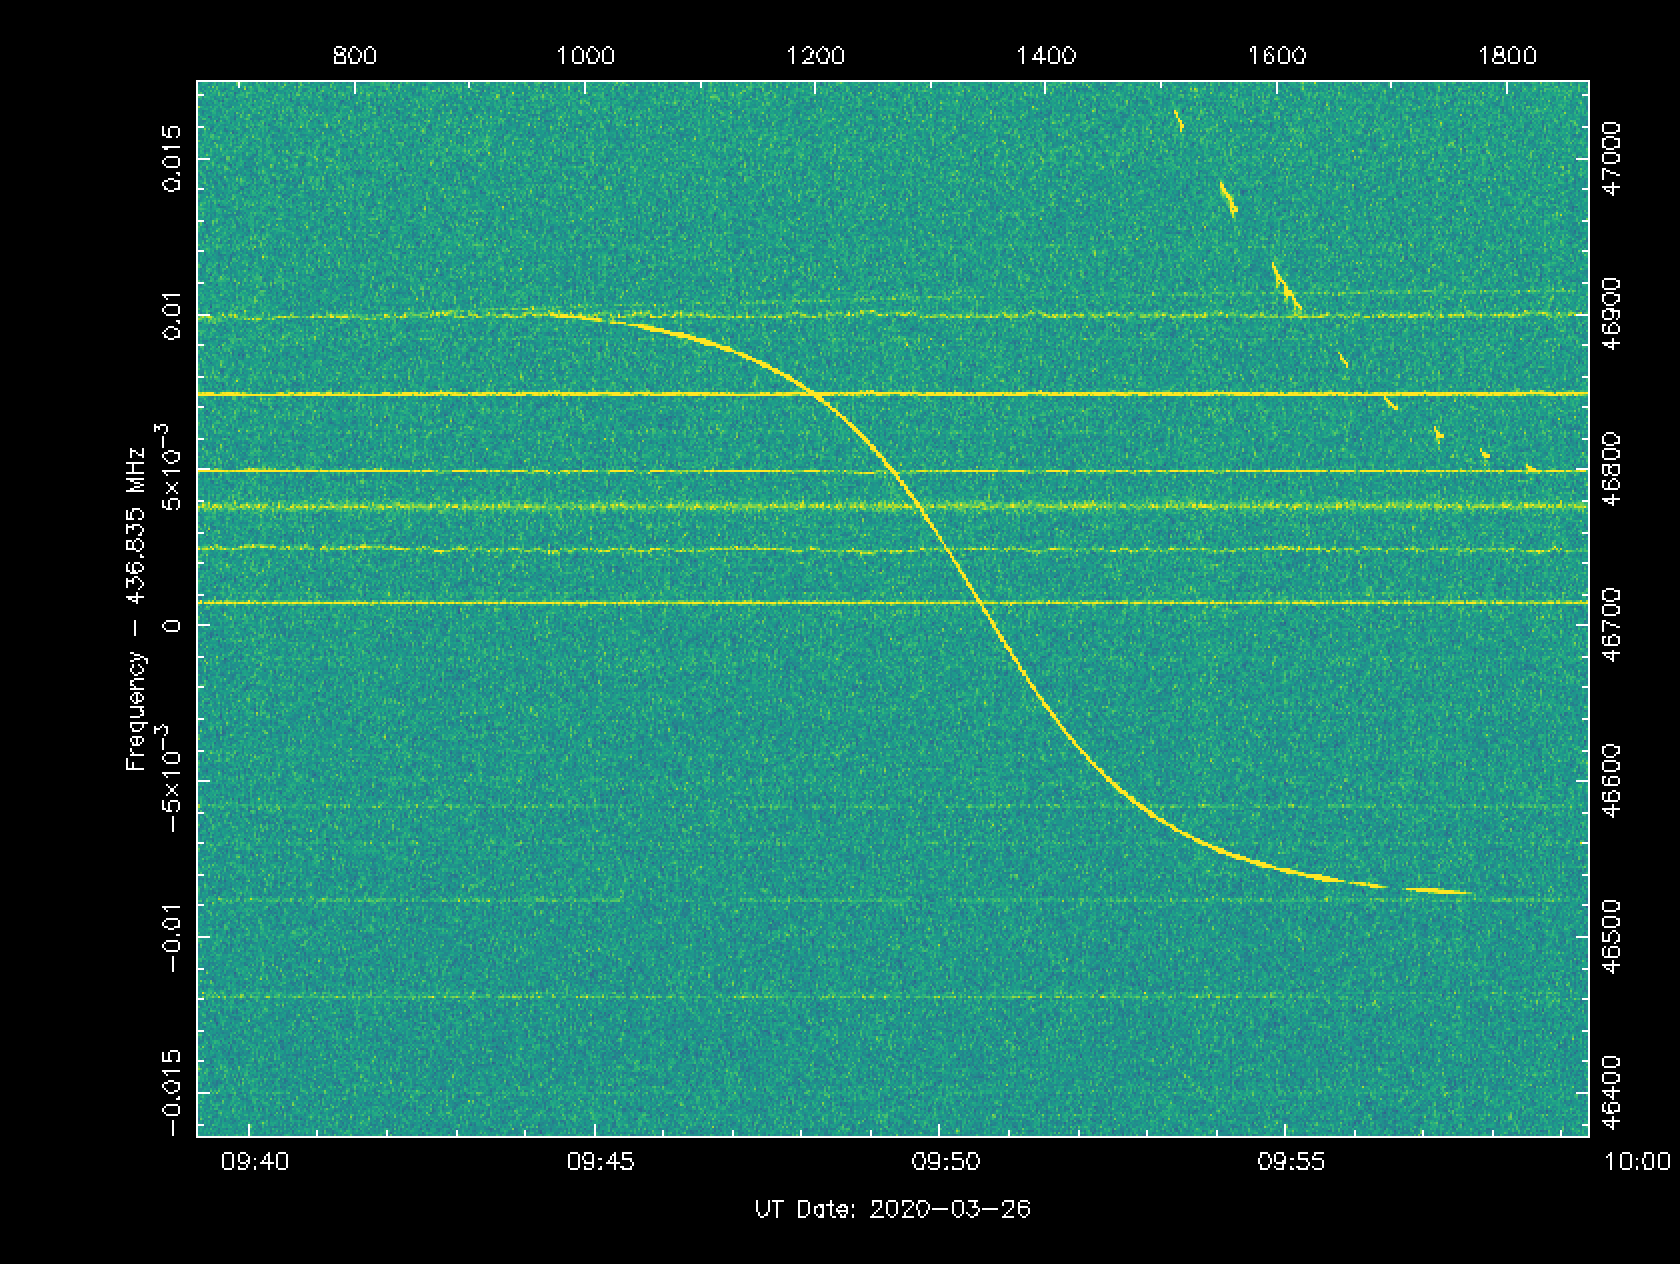 Fairly obvious CW signal, centered.